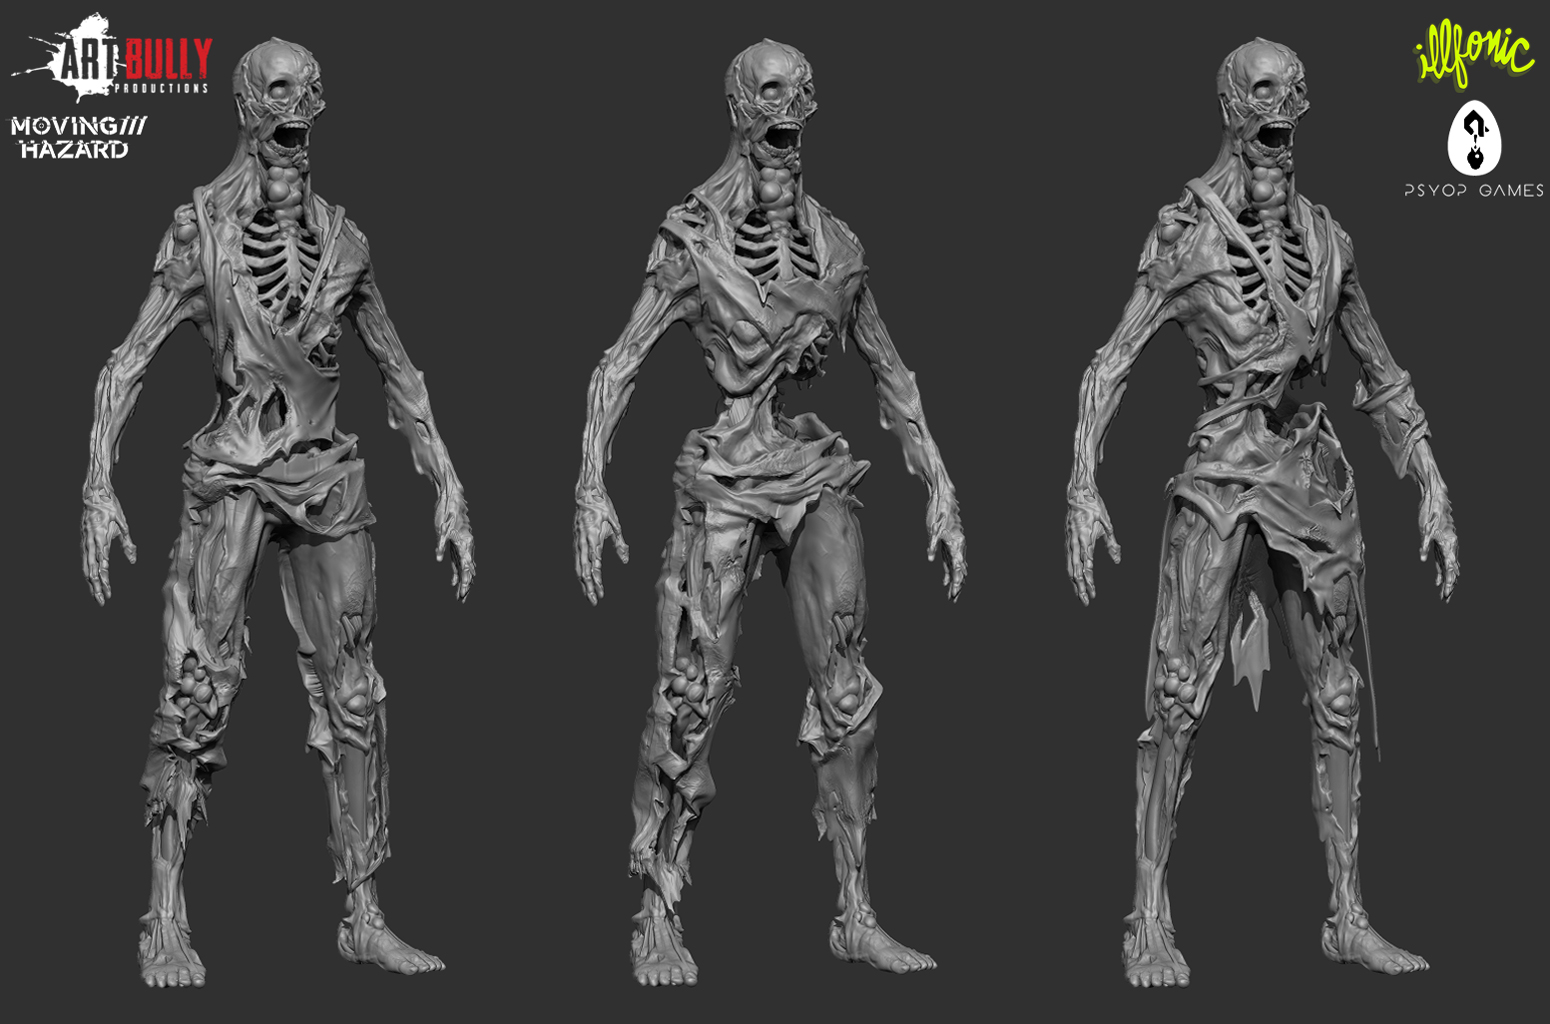 Zombie_4th_Stage_Clothes_Sculpt_01.jpg